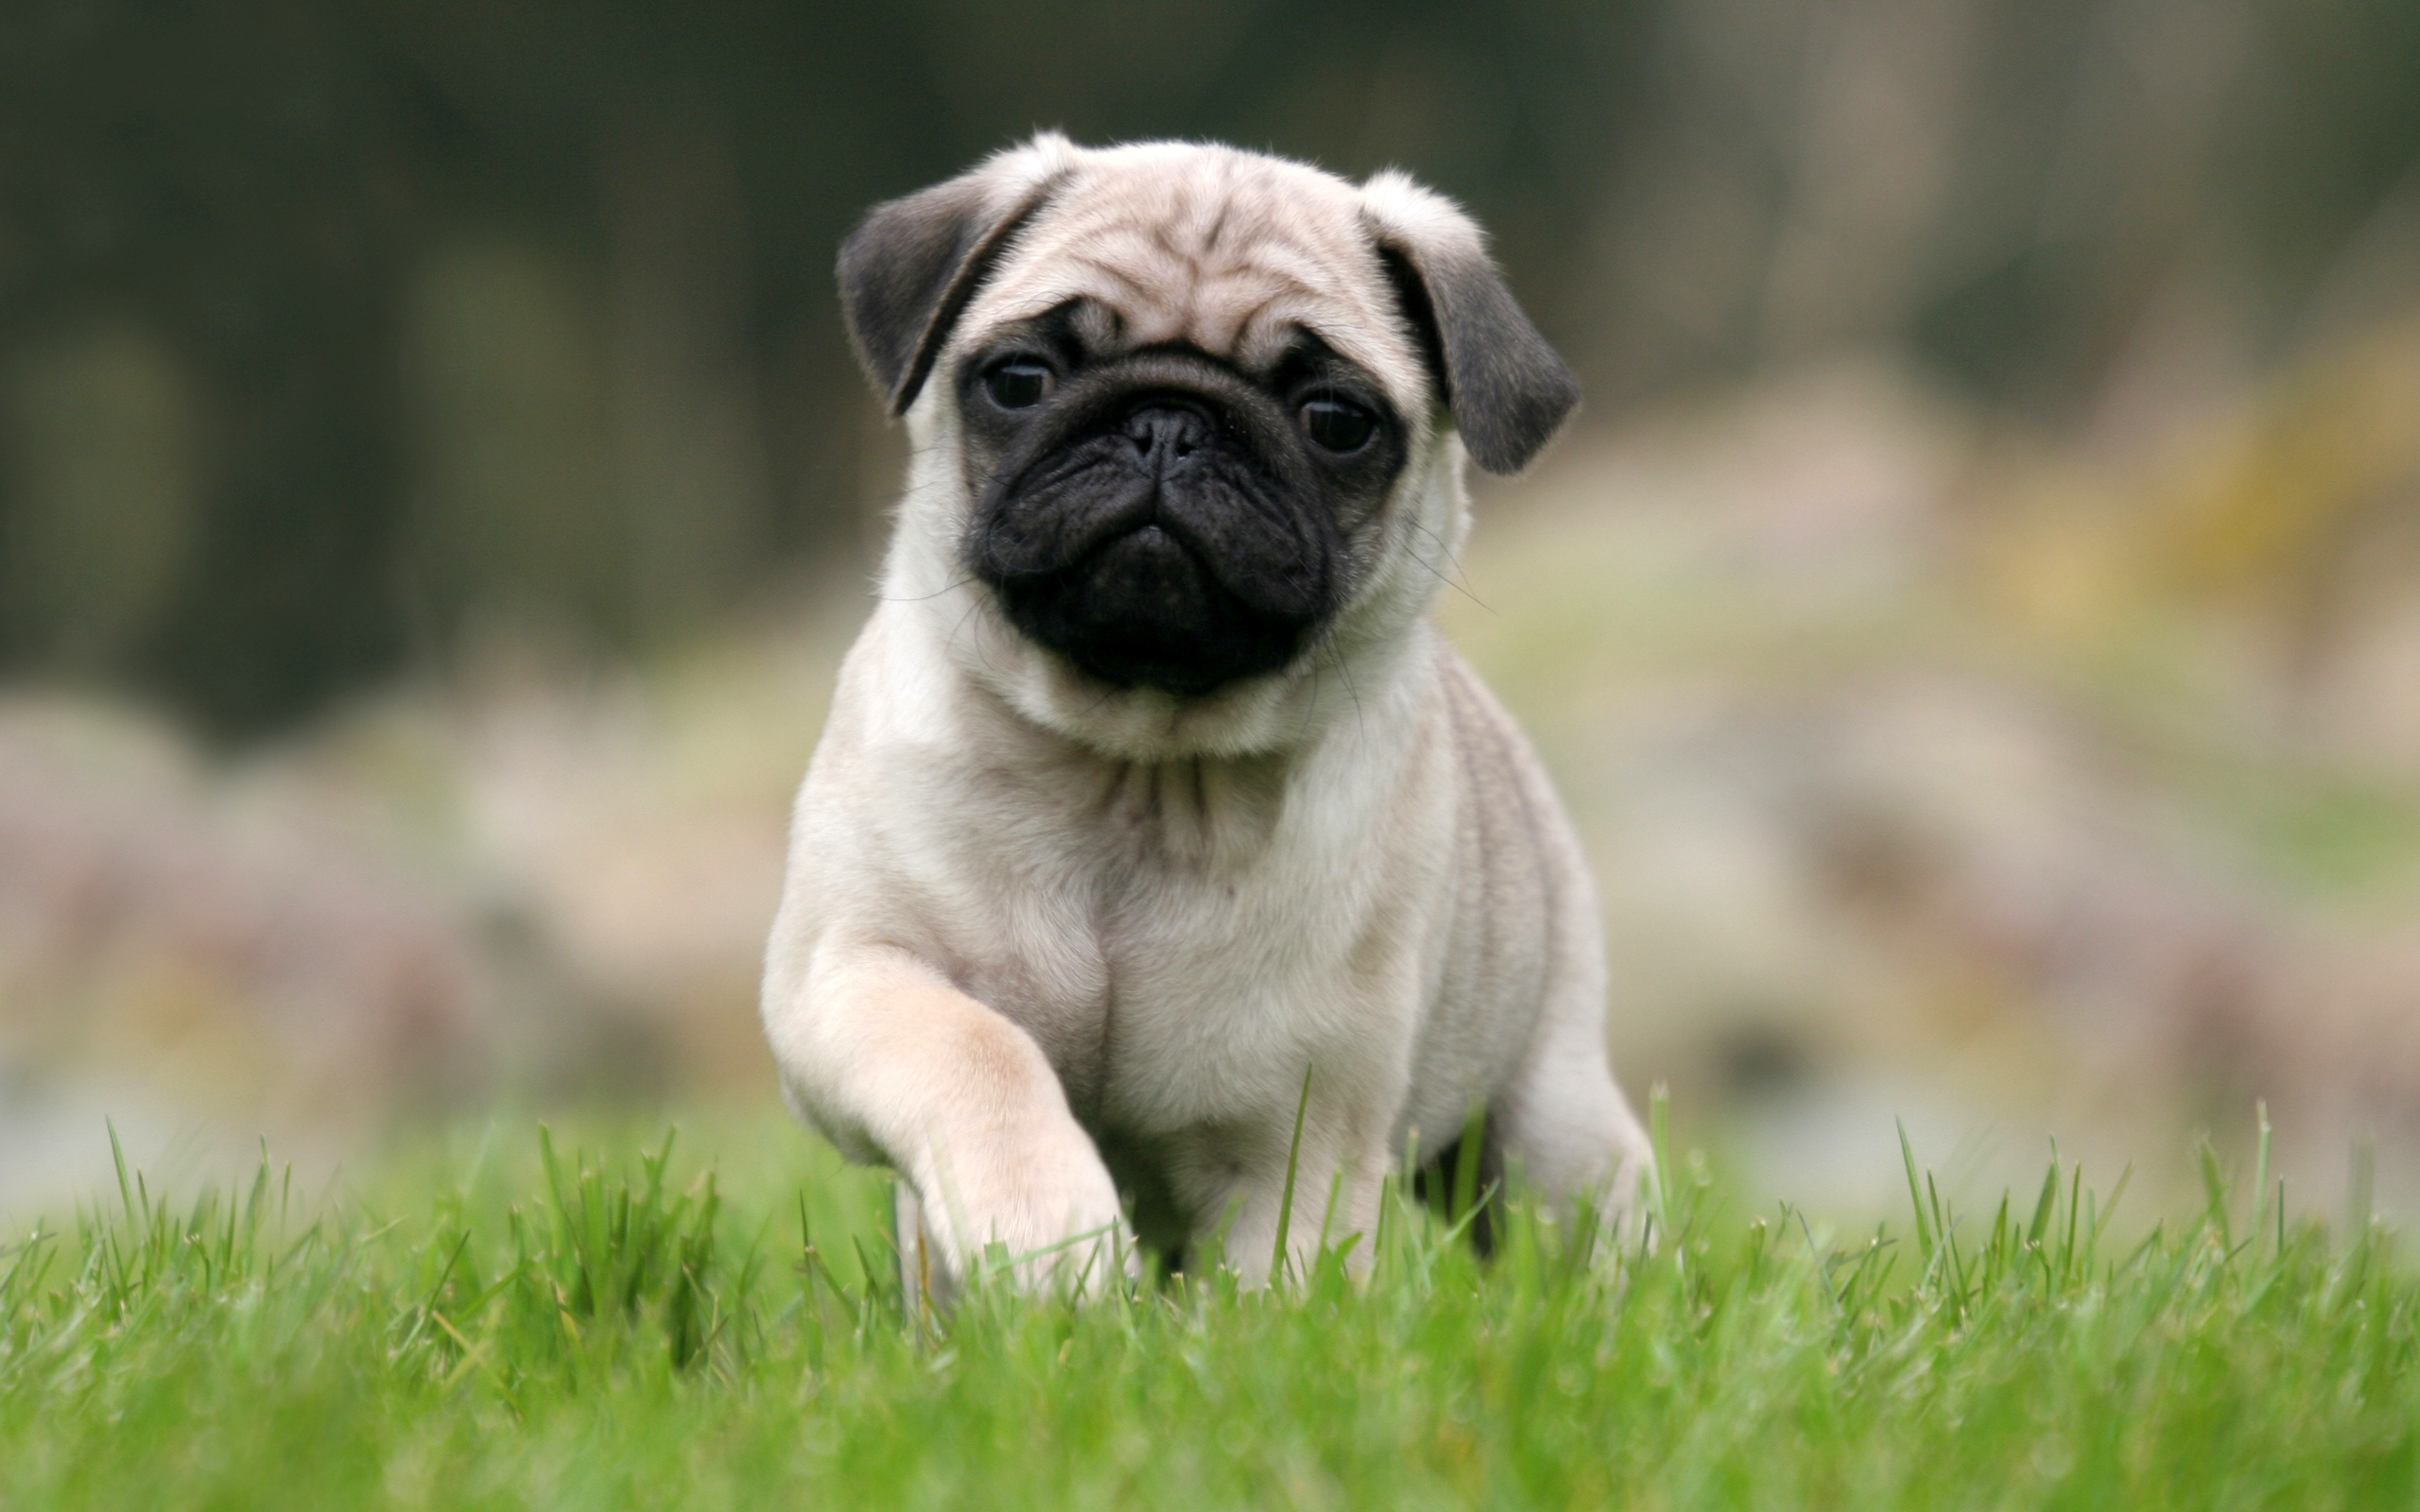 Pug Full HD Wallpaper And Background